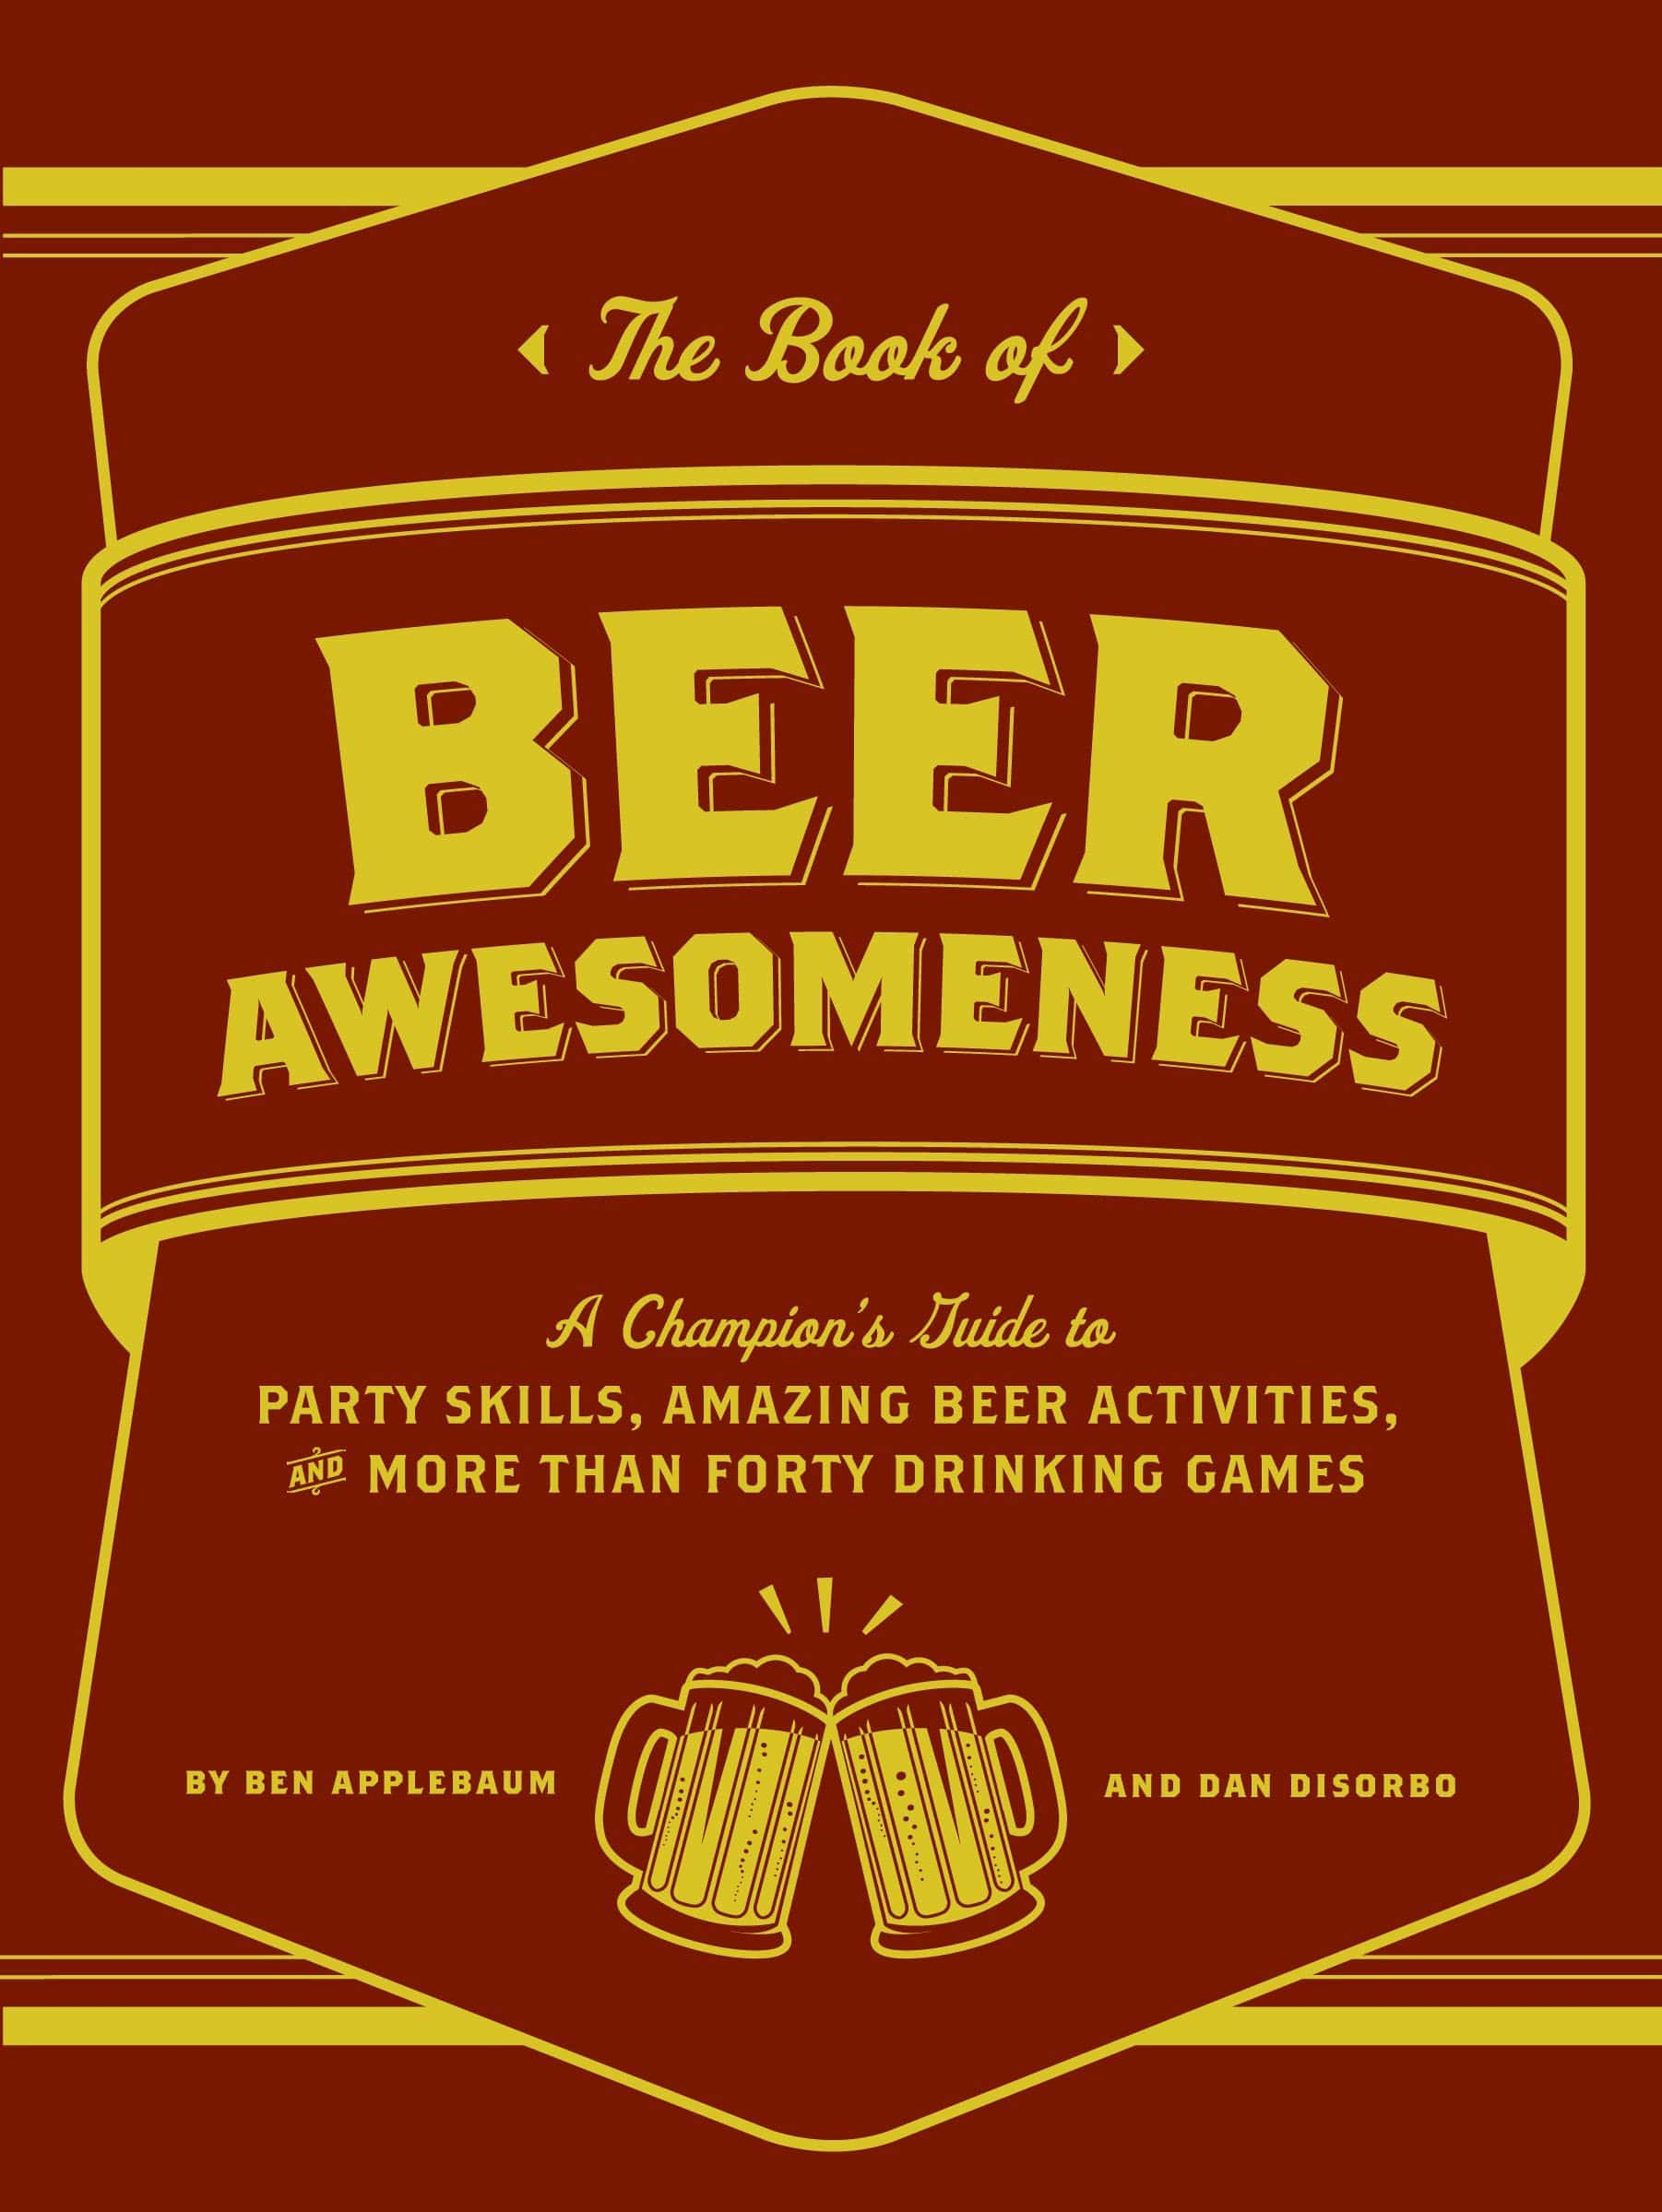 Beer Awesomeness Book Hachette (Chronicle Books) Paper Goods